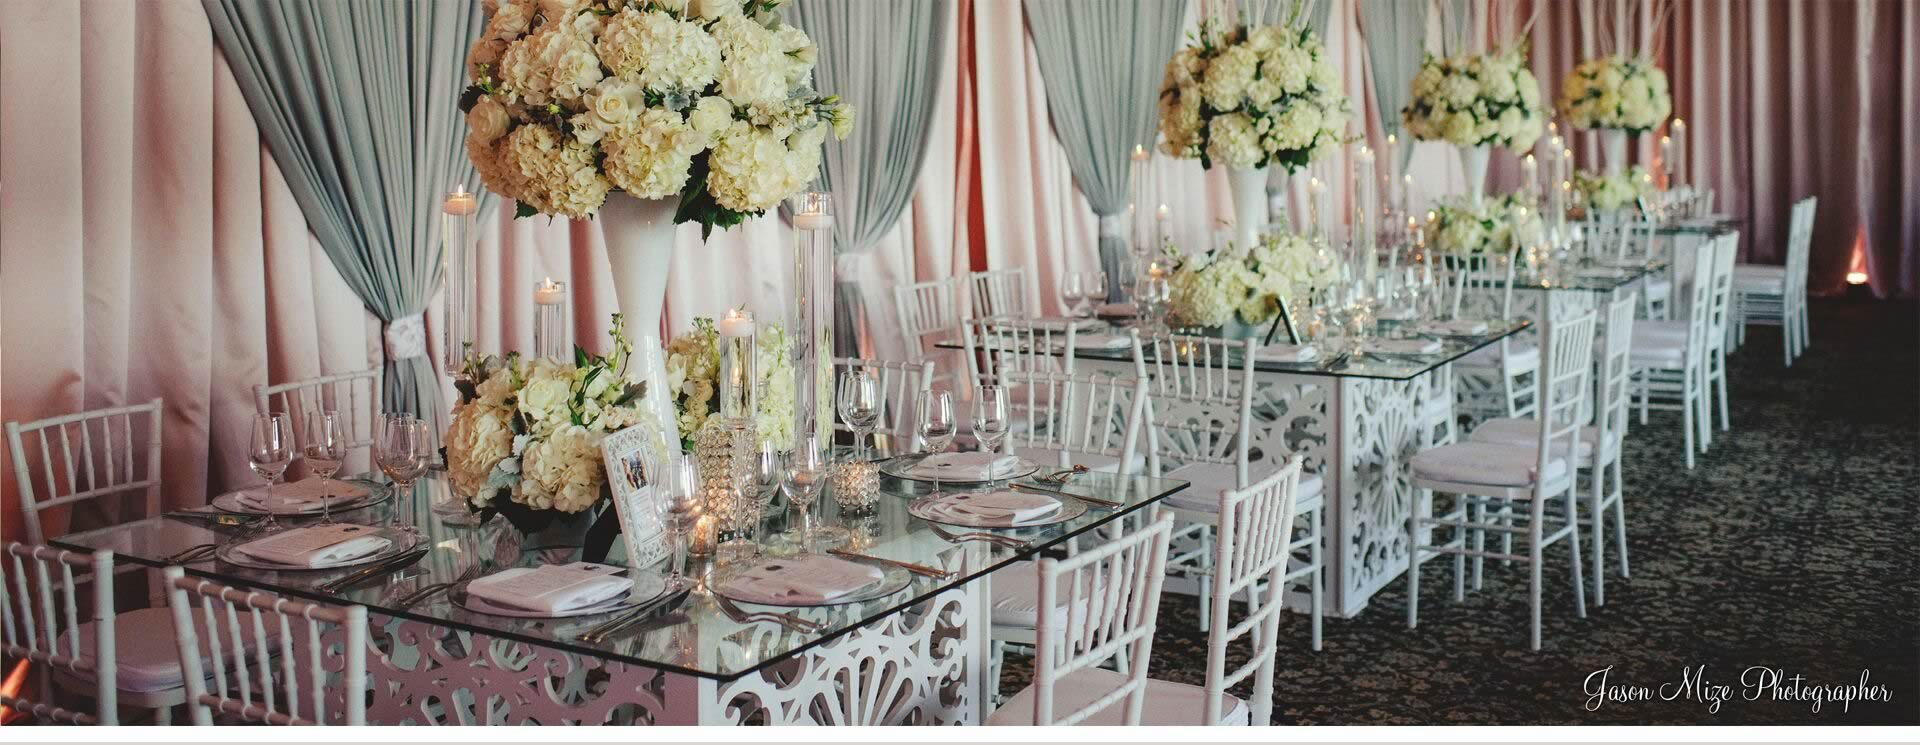 His And Hers Wedding Chairs Wedding Ideas